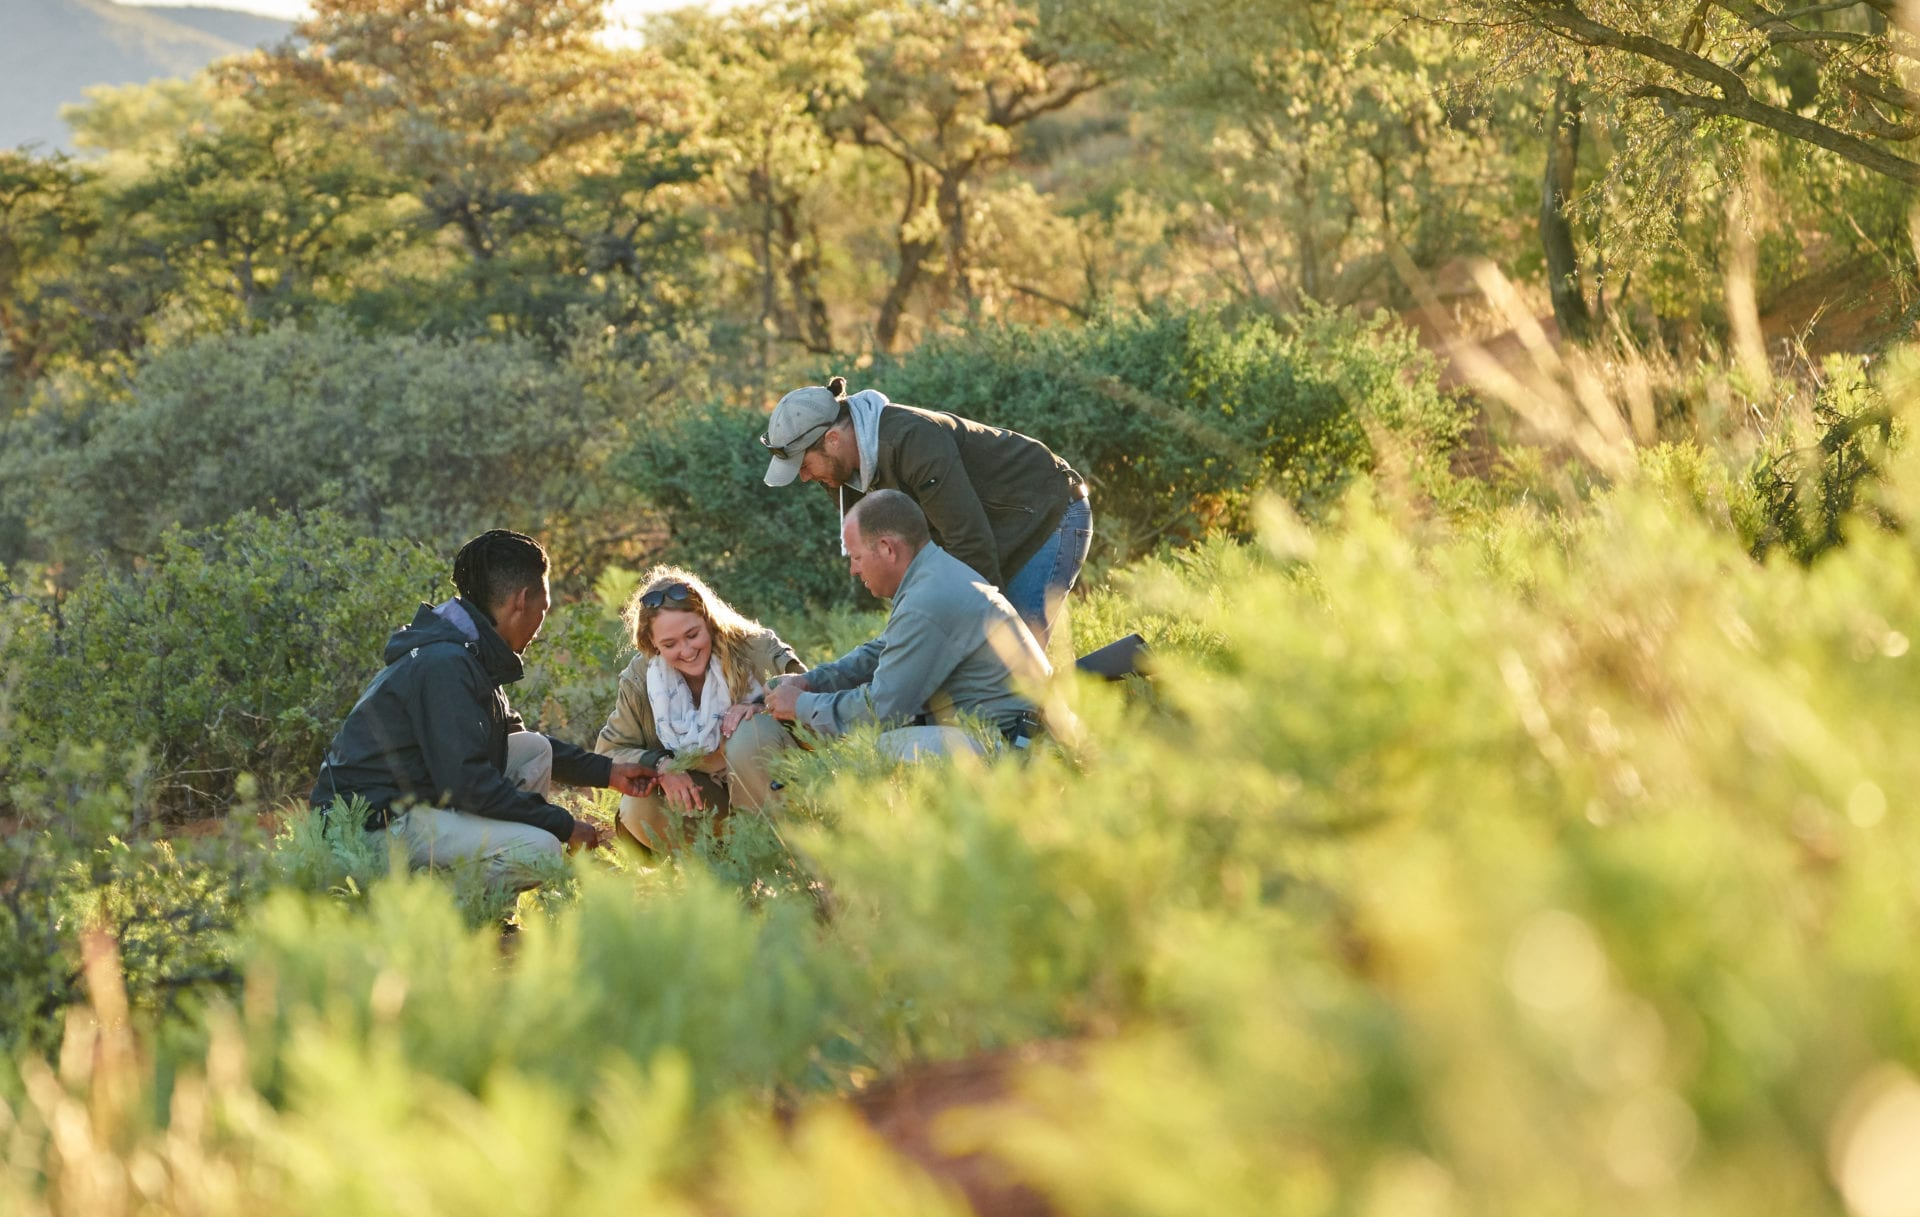 Tswalu conservation research